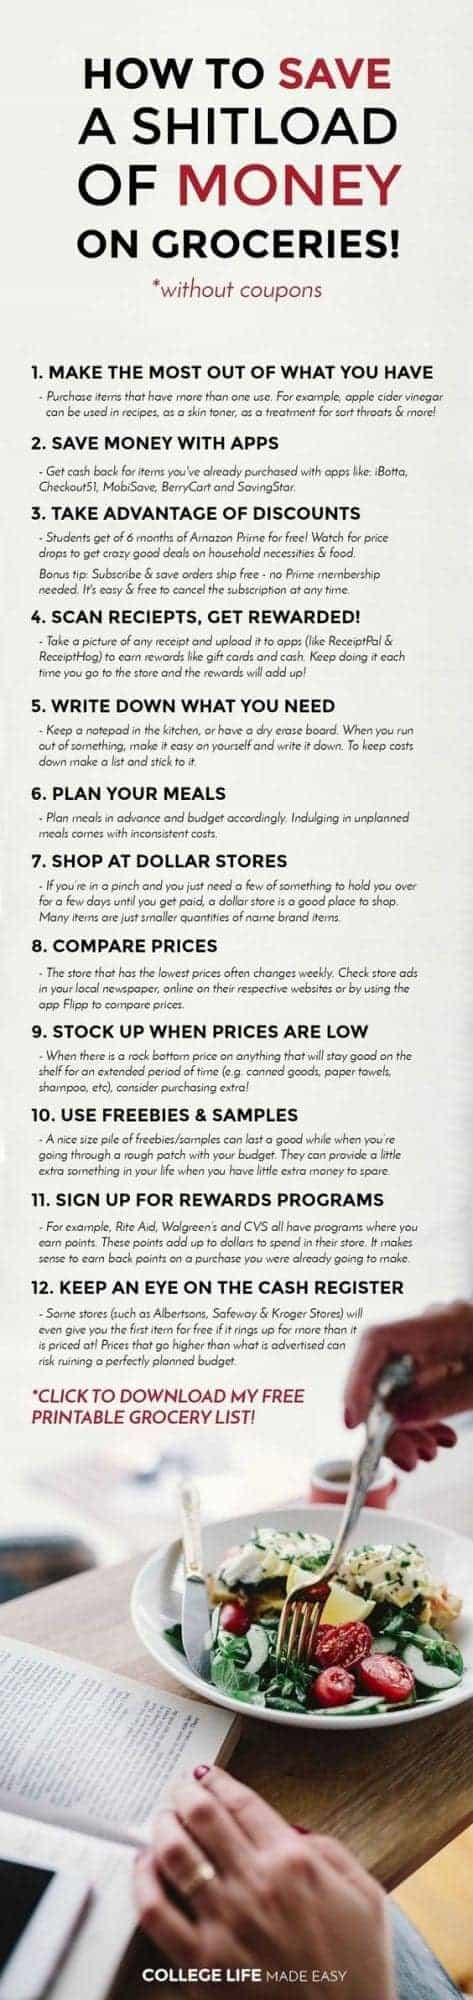 12 Ways for College Students to Save Money on Groceries (No Coupons Needed!)